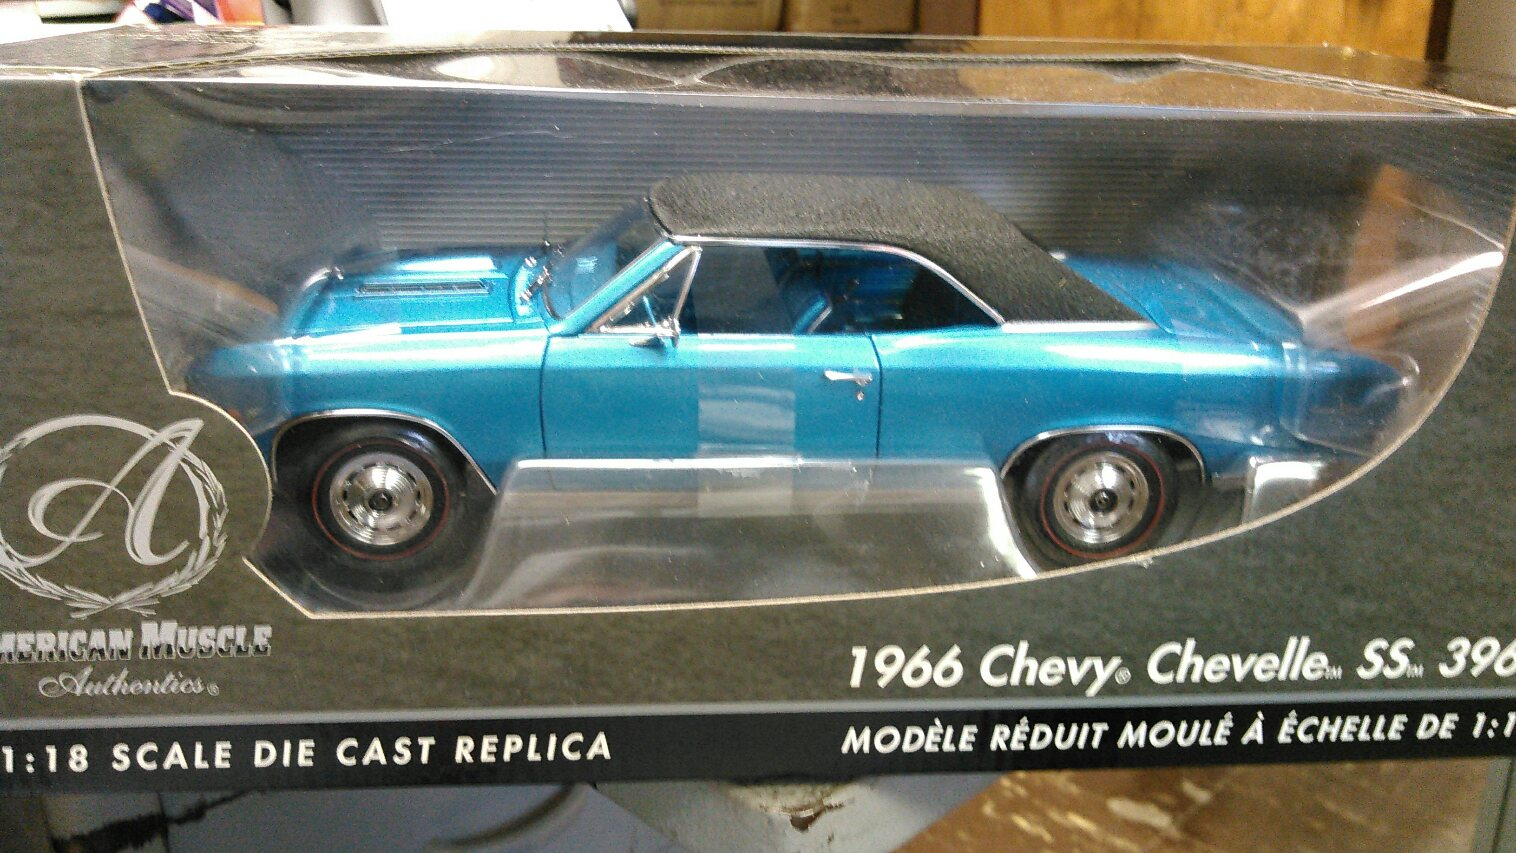 1966 Chevy Chevelle Ss 396 Chase Car Larrys Diecast Cars Chevrolet